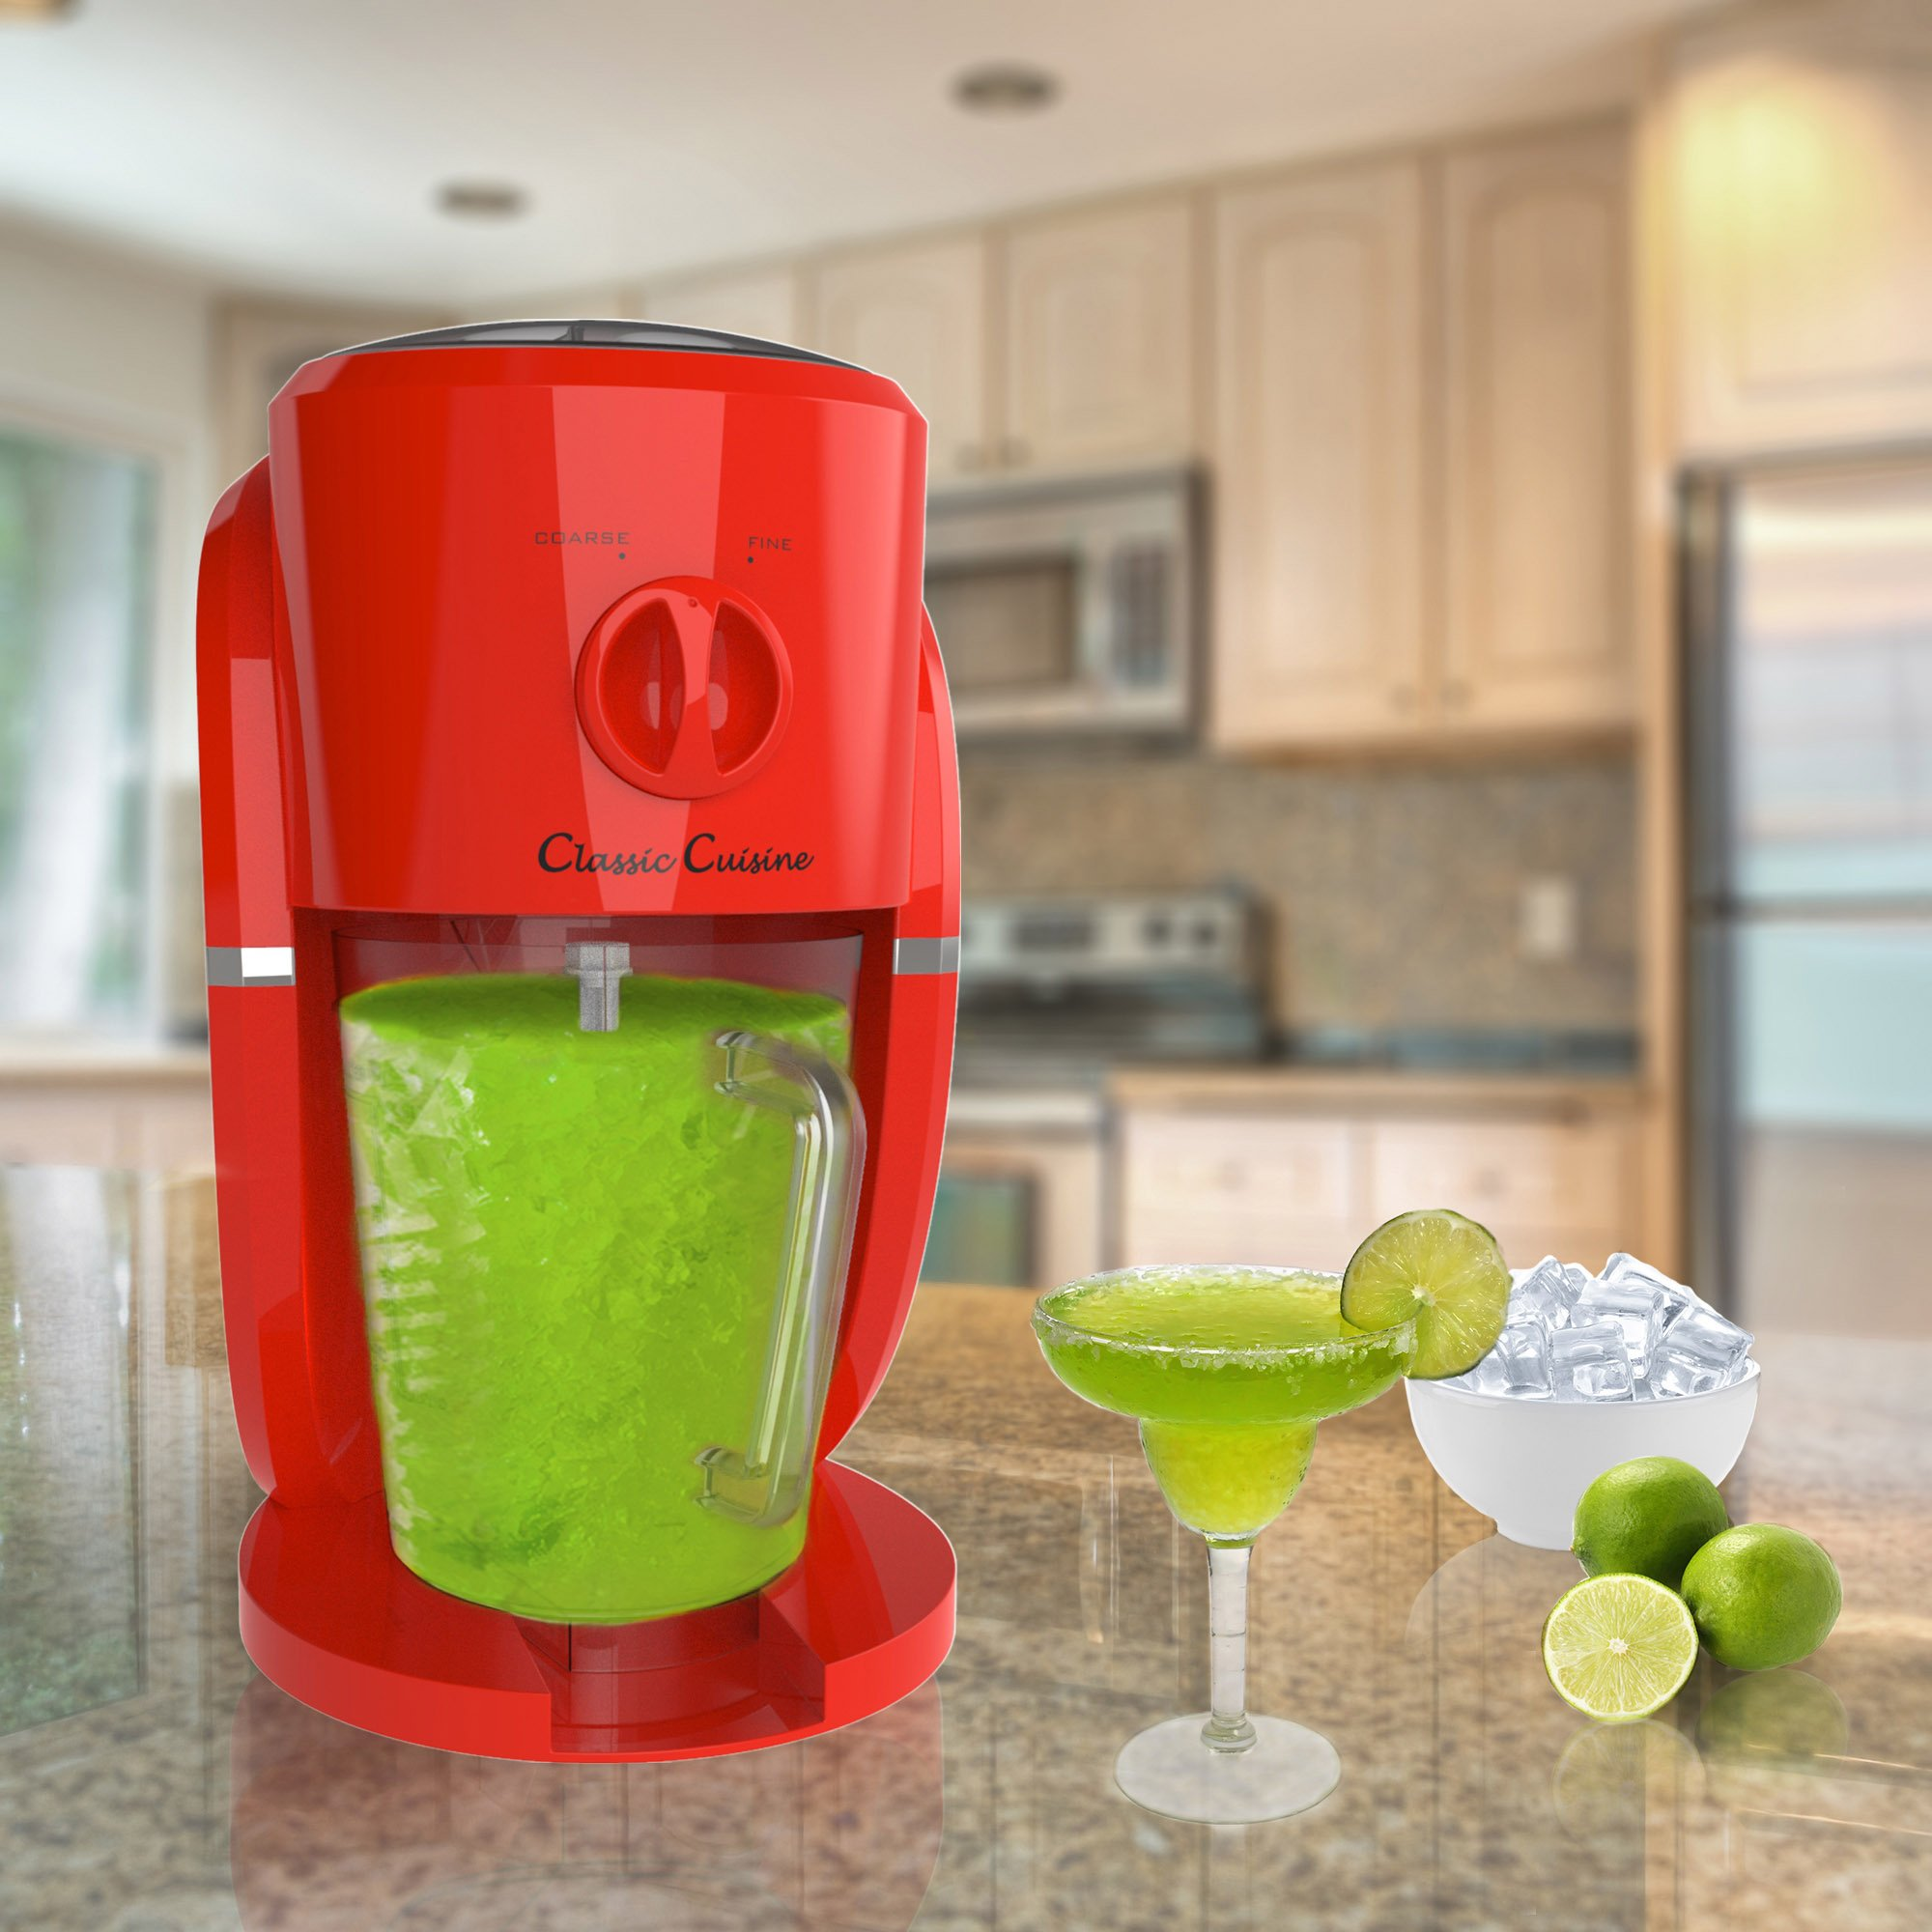 Frozen Drink Maker, Mixer and Ice Crusher Machine for Margaritas, Pina Coladas, Daiquiris, Shaved Ice Treats or Slushy Desserts by Classic Cuisine by Classic Cuisine (Image #3)